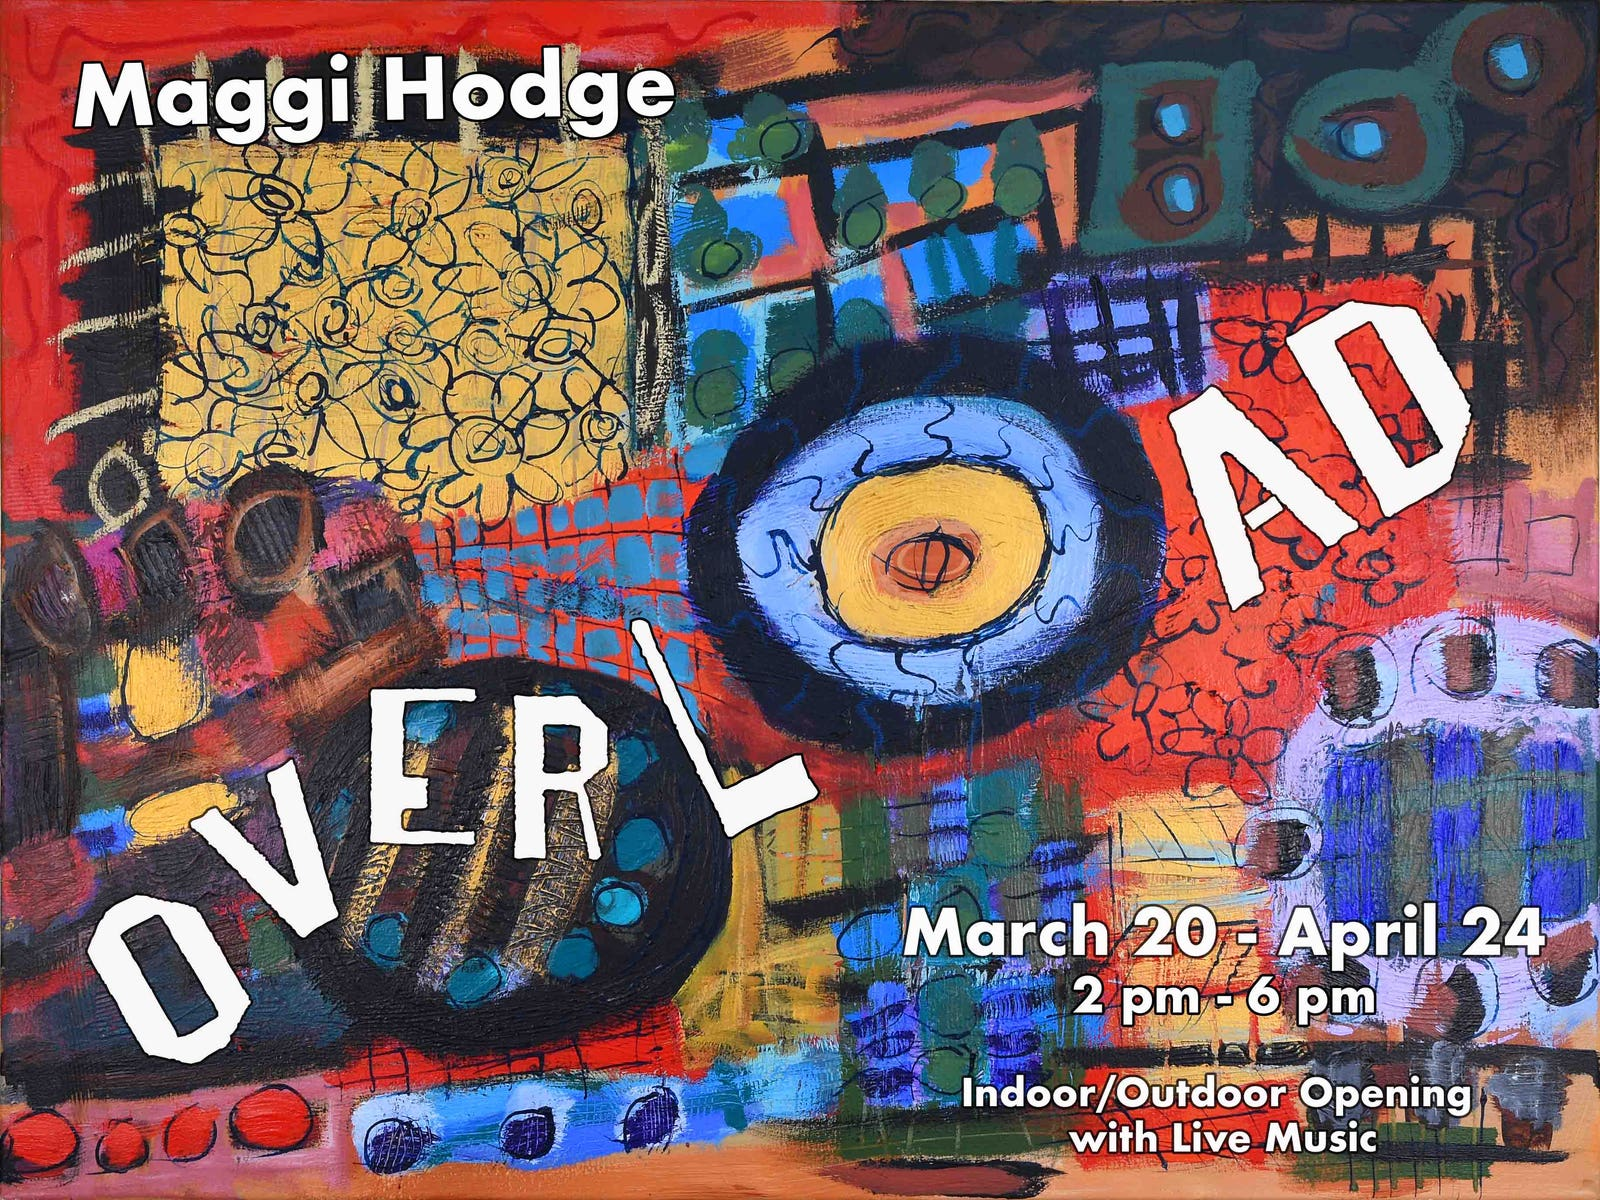 Flyer Invitation for Outdoor/Indoor Exhibition Opening at MASH Gallery